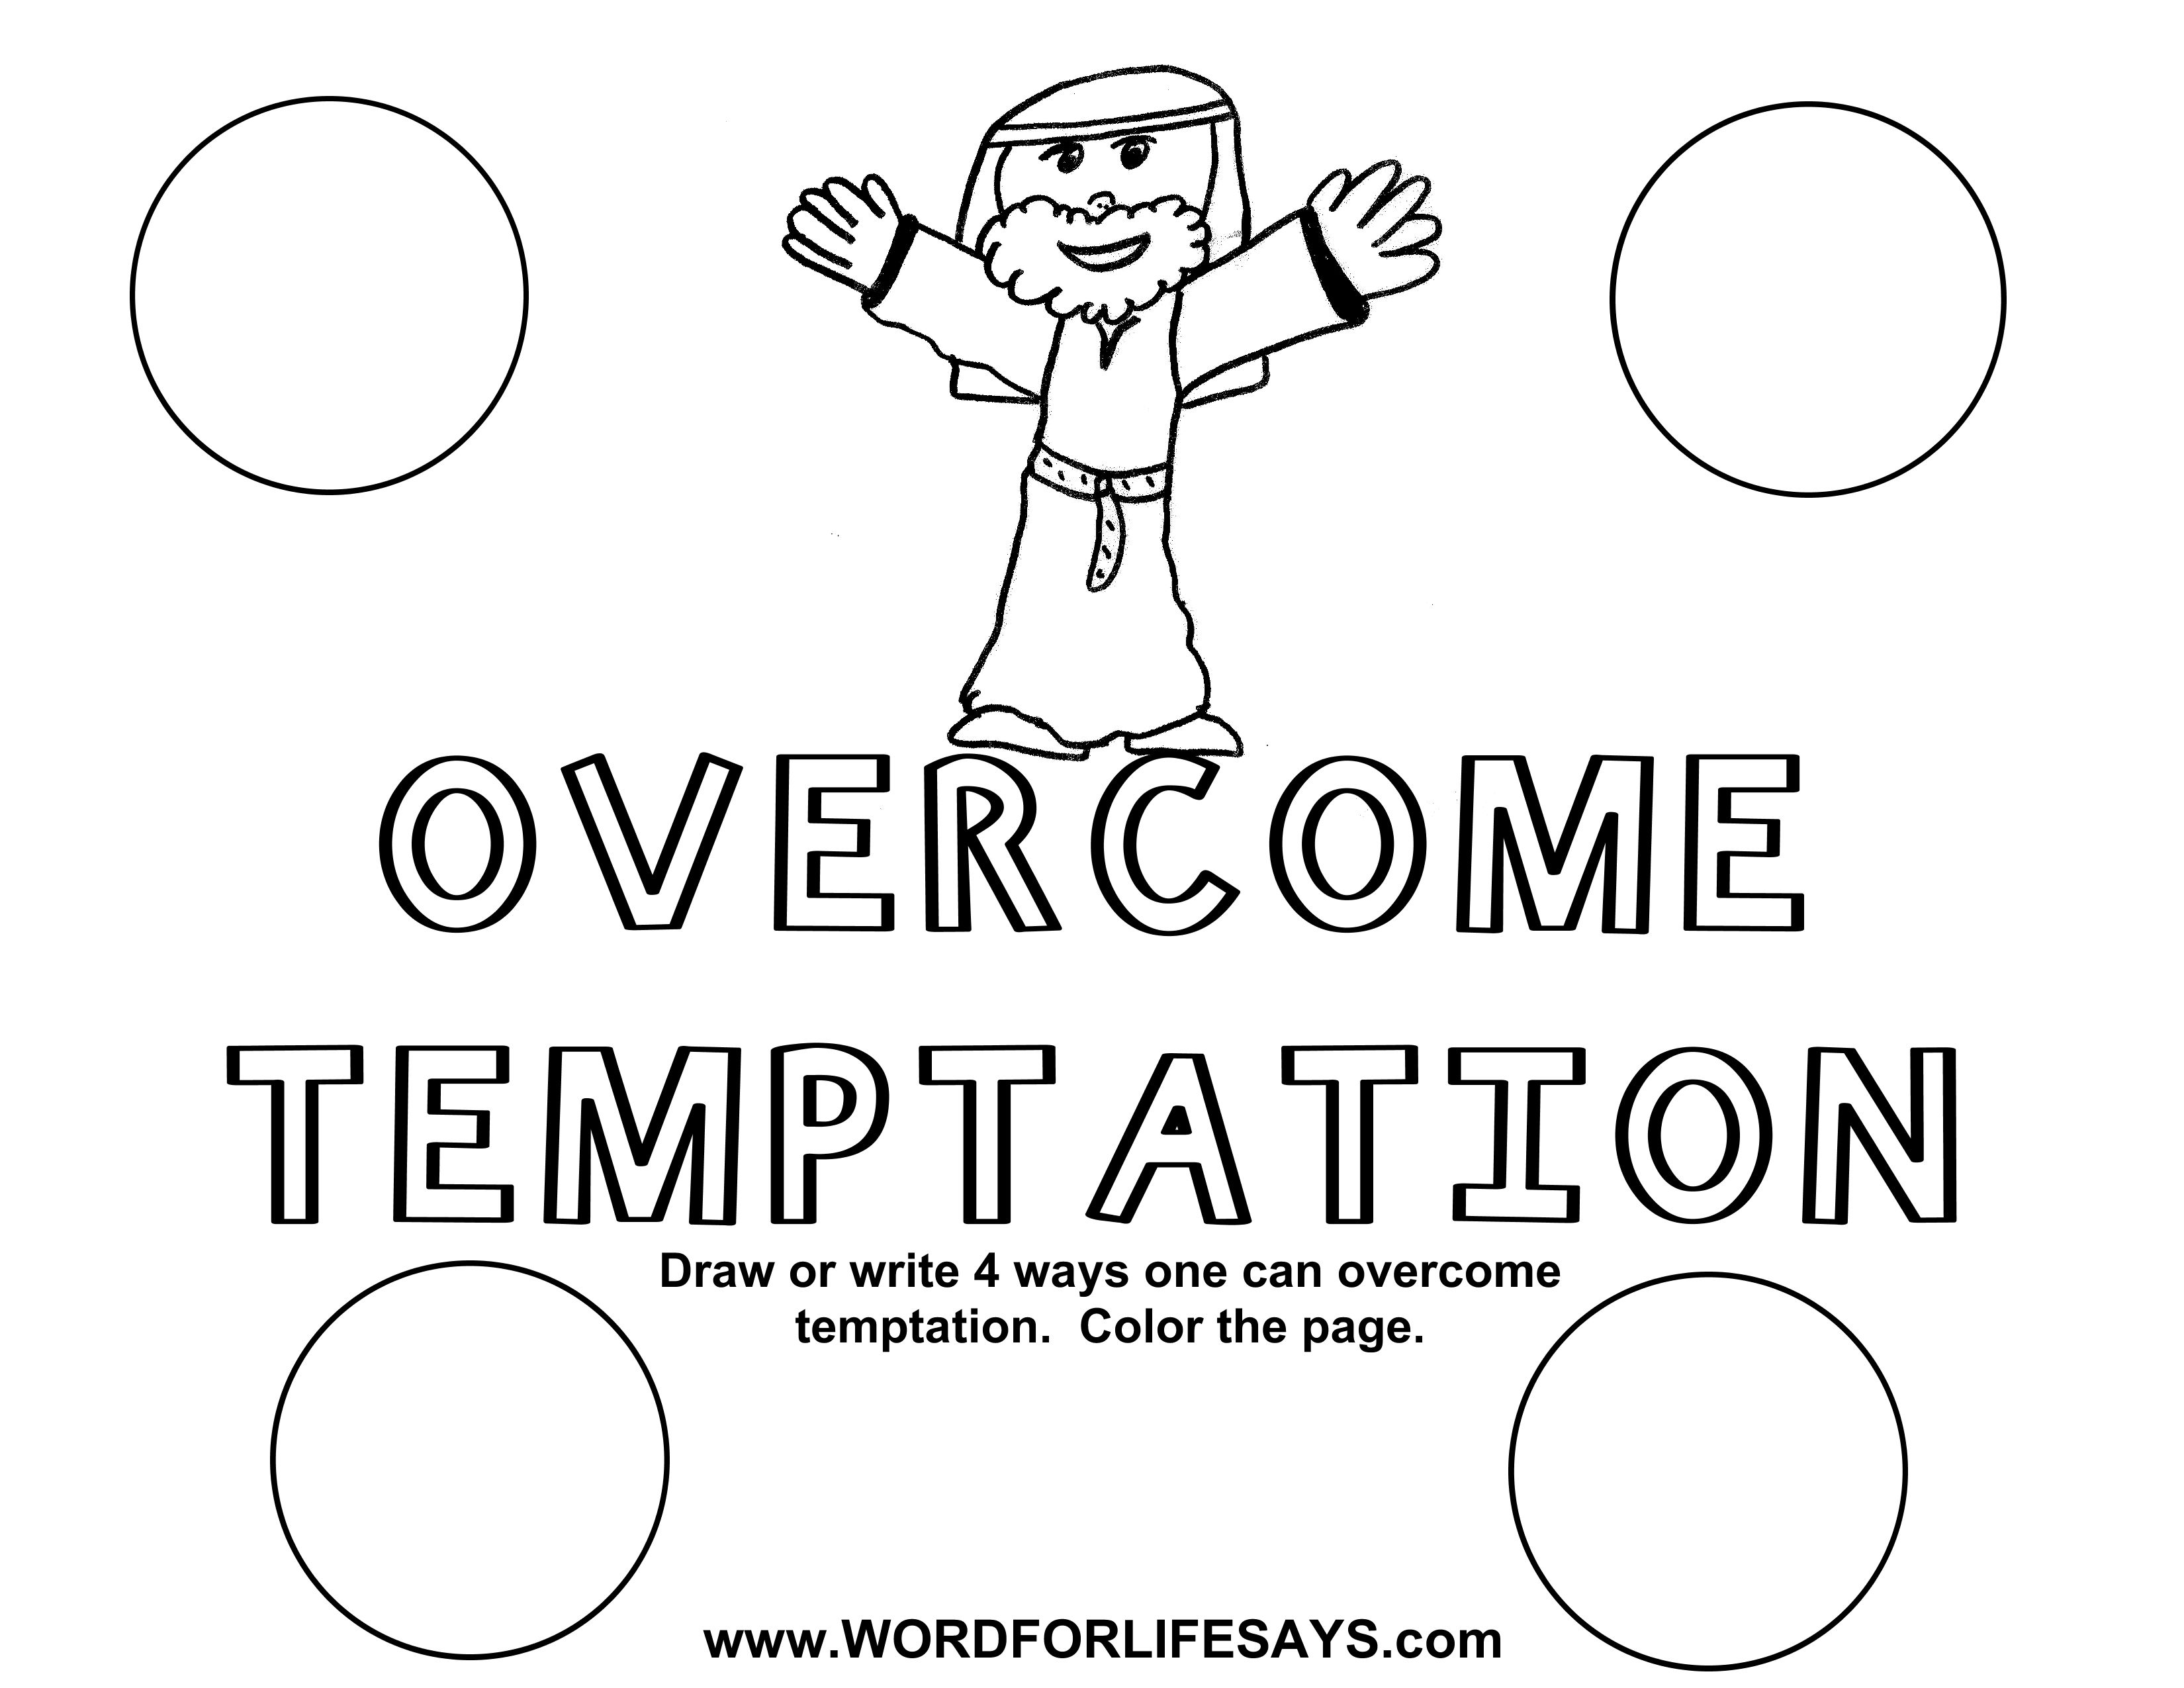 Overcome Temptation Draw The Scene 001